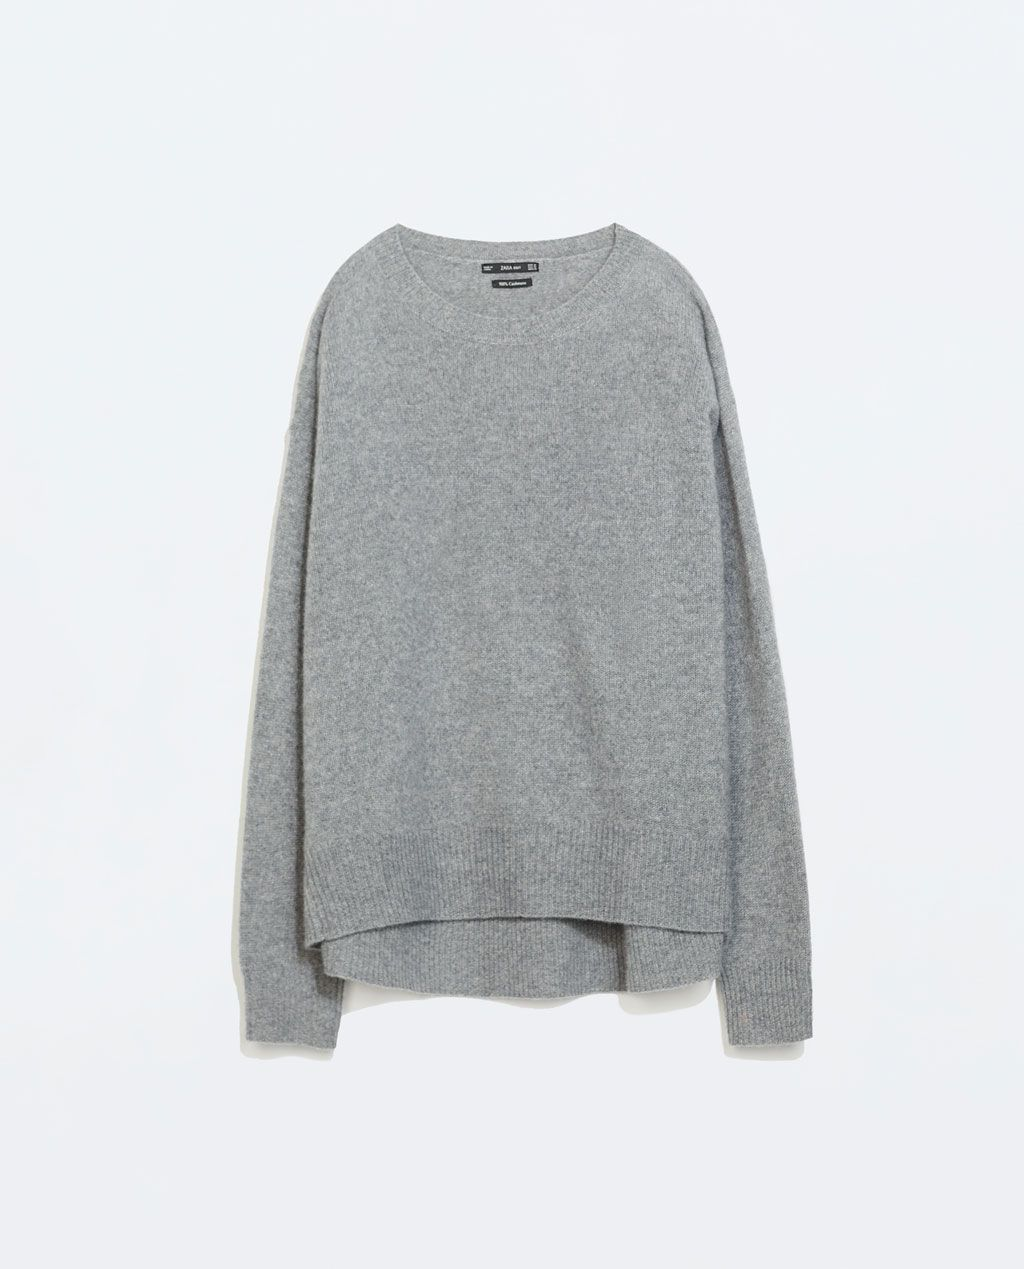 ZARA NEW THIS WEEK OVERSIZE CASHMERE JUMPER | sweaters